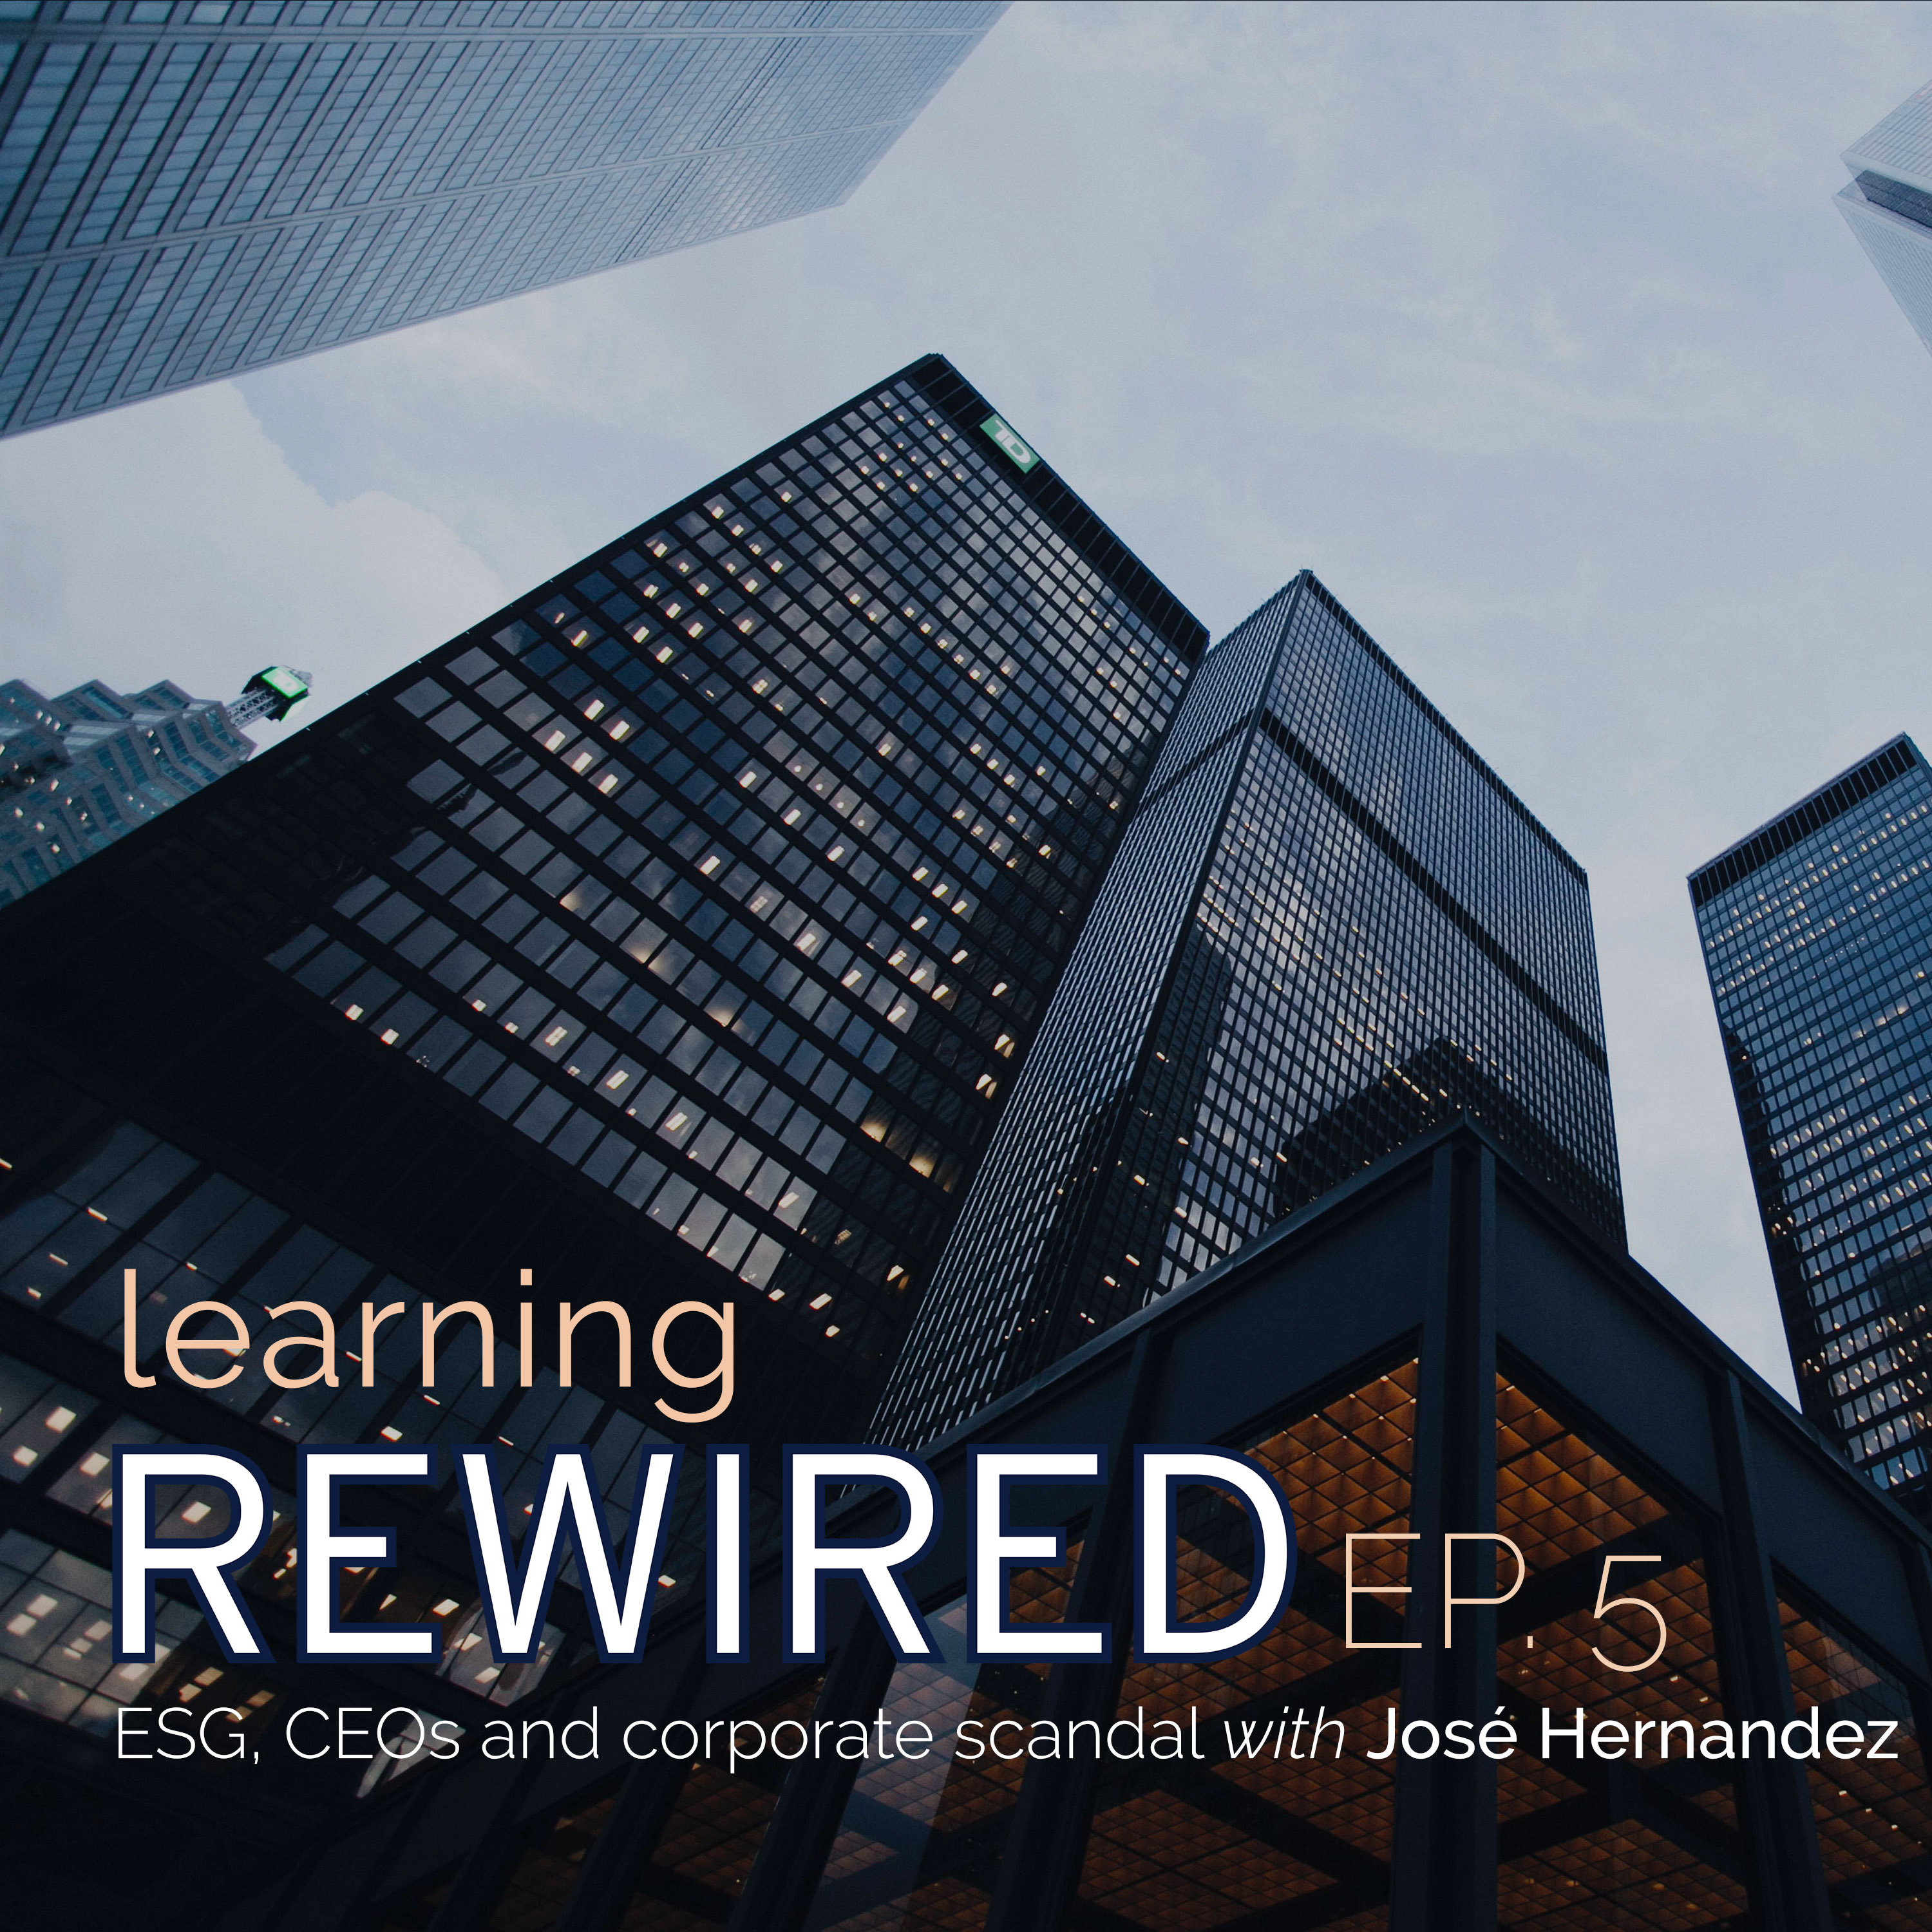 Artwork for podcast Executive Learning REWIRED